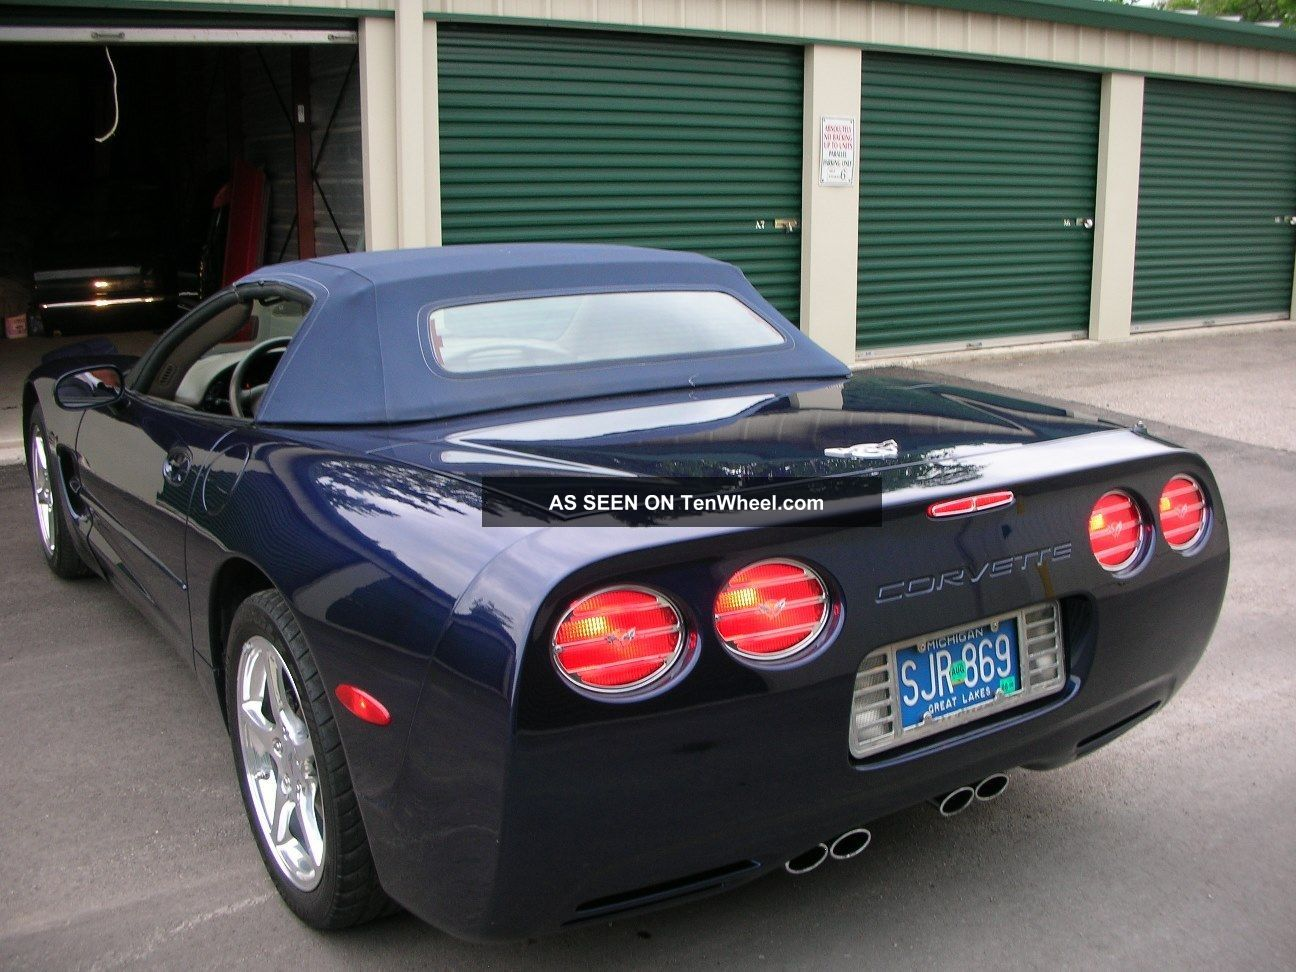 Collectable Convertible Corvette Complete Commemorative Edition Lgw on 2000 Chrysler Sebring Owners Manual